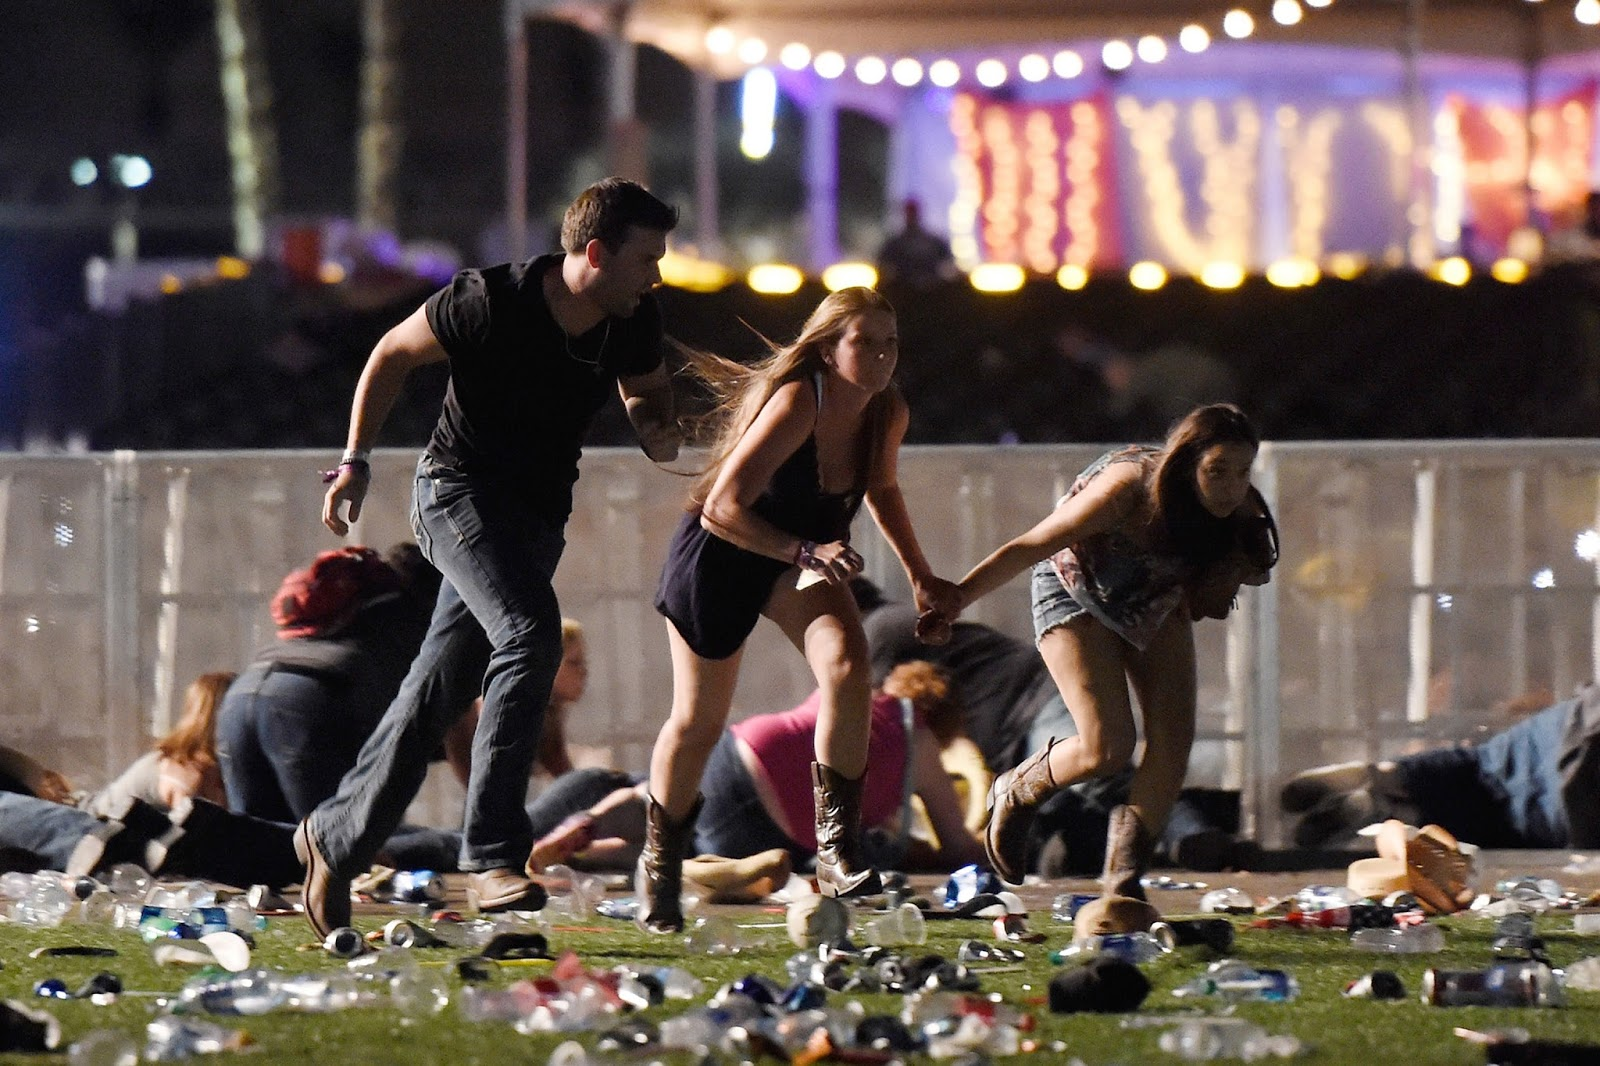 LAS VEGAS MASSACRE 8